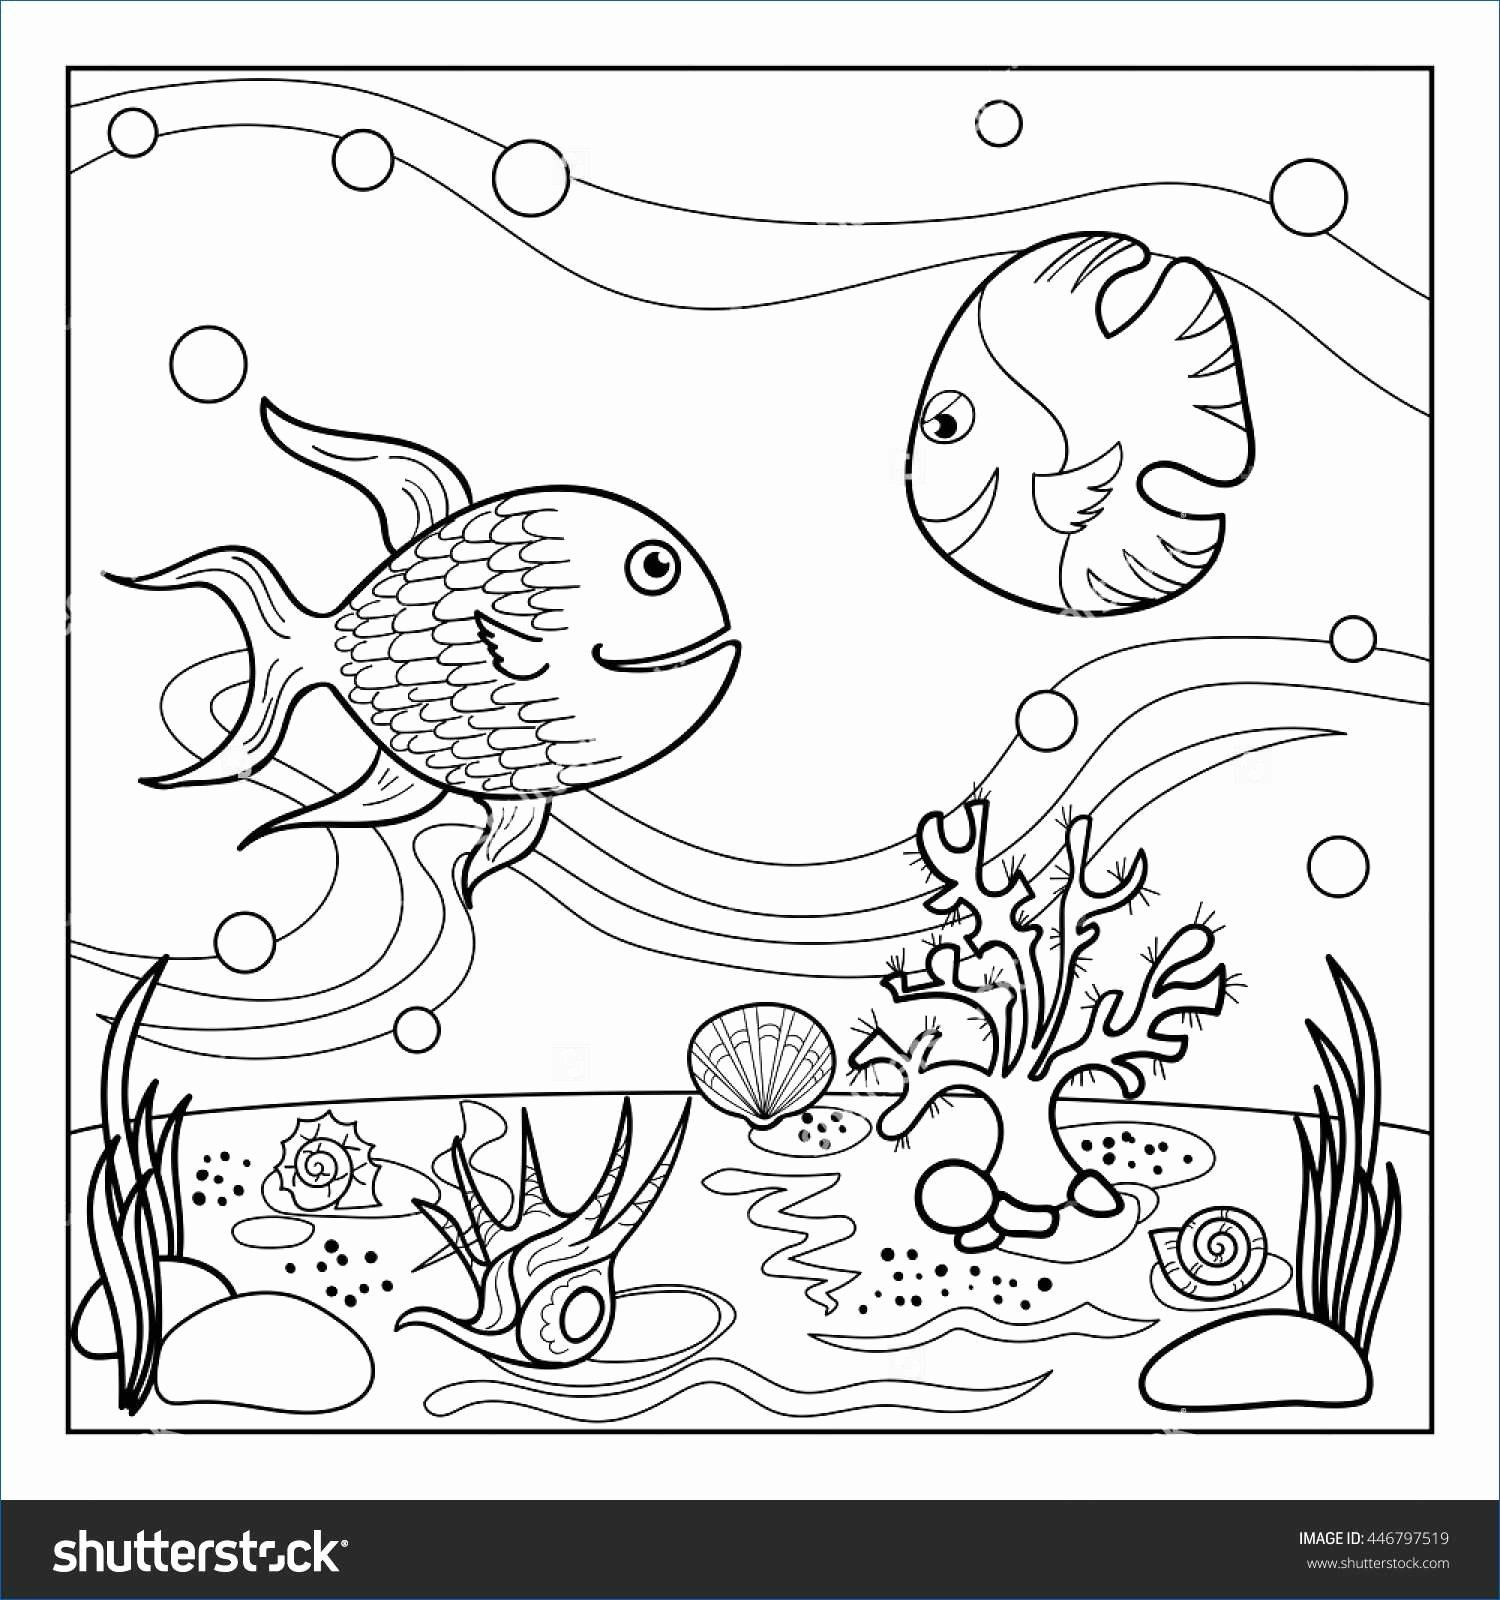 Pin On Best Coloring Page On Phones